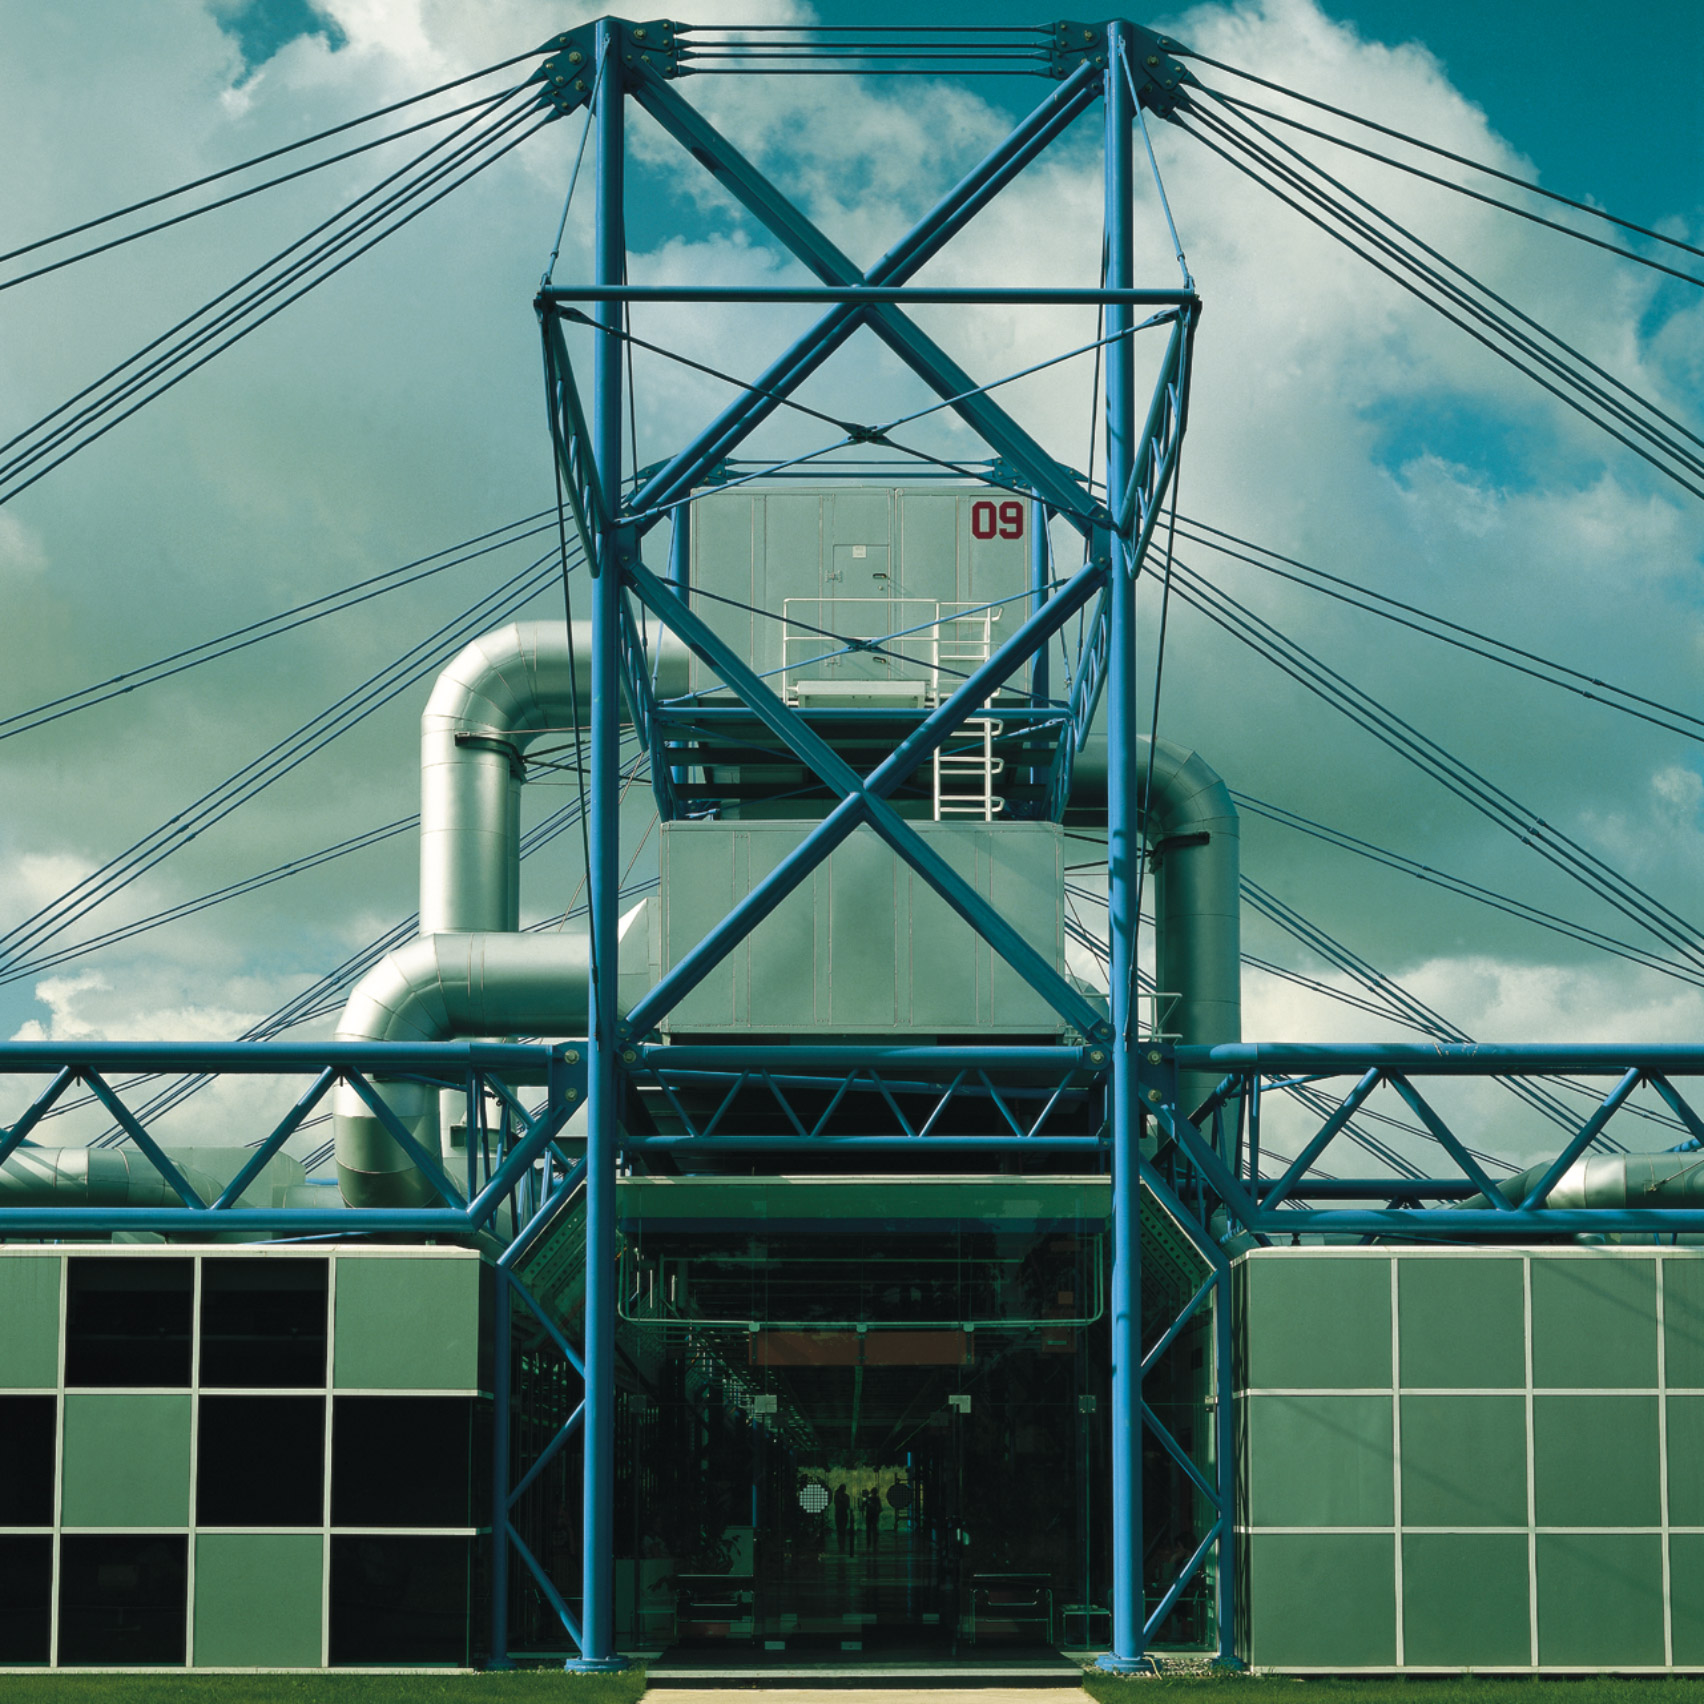 High-tech buildings: Inmos Microprocessor Factory in Wales by Richard Rogers